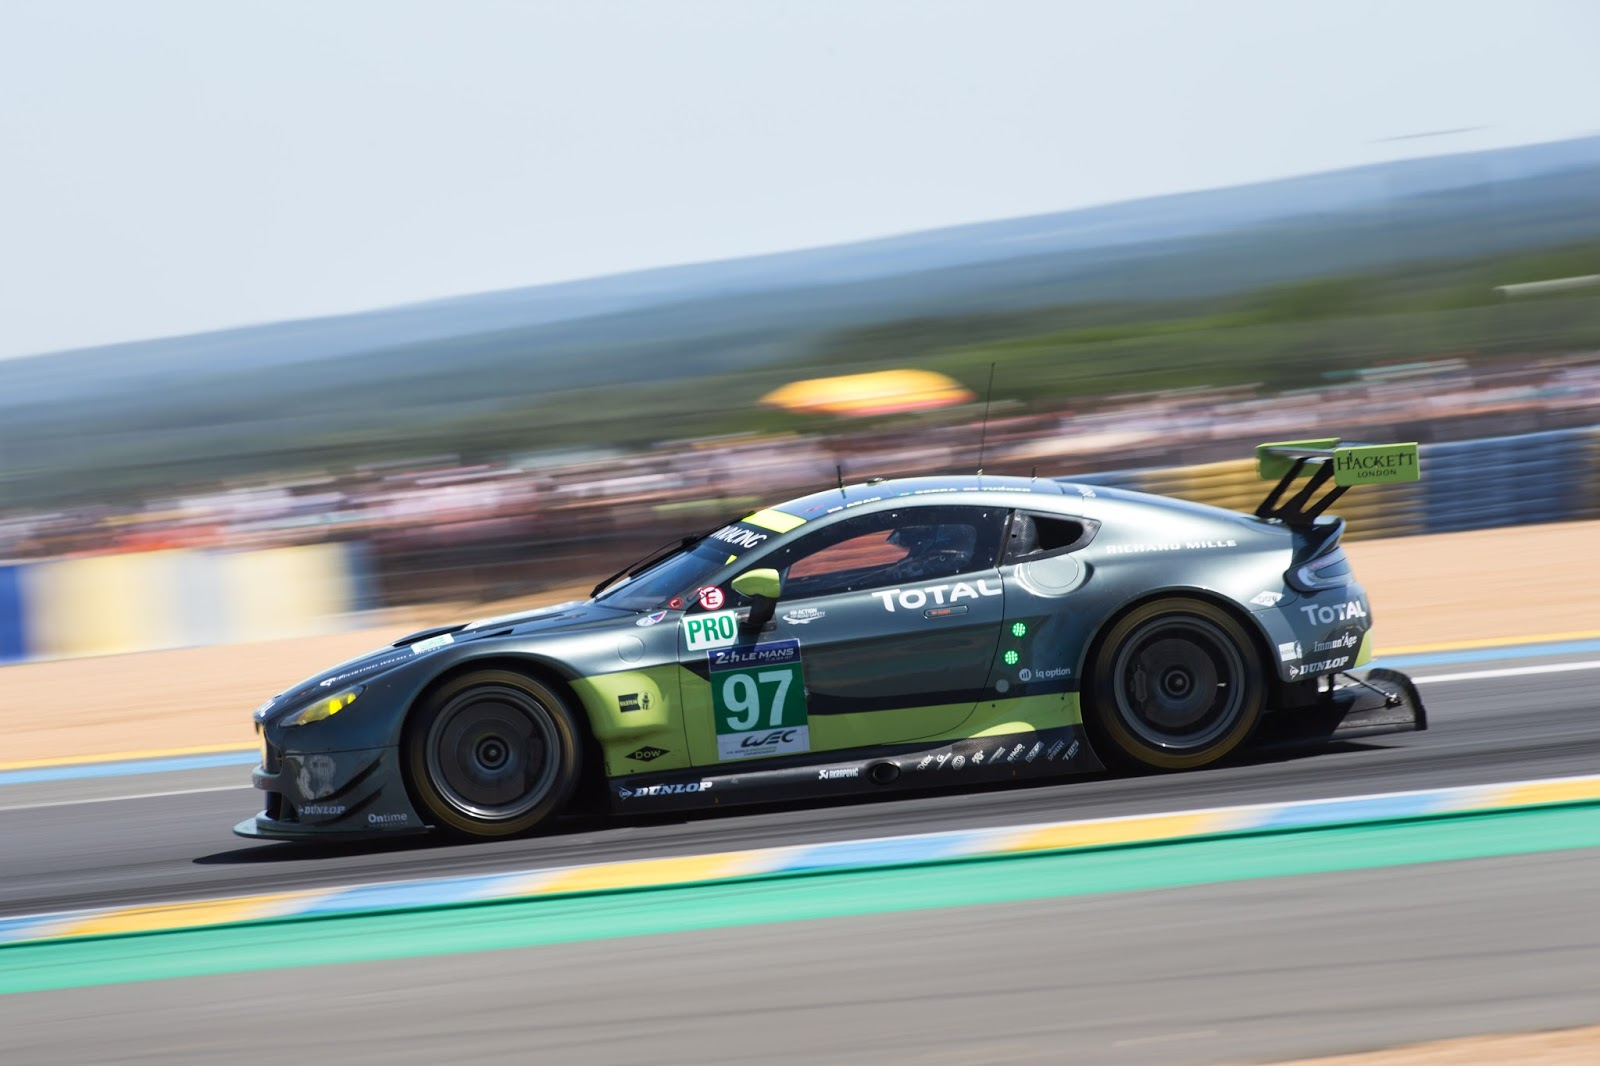 aston martin wins le mans. Black Bedroom Furniture Sets. Home Design Ideas